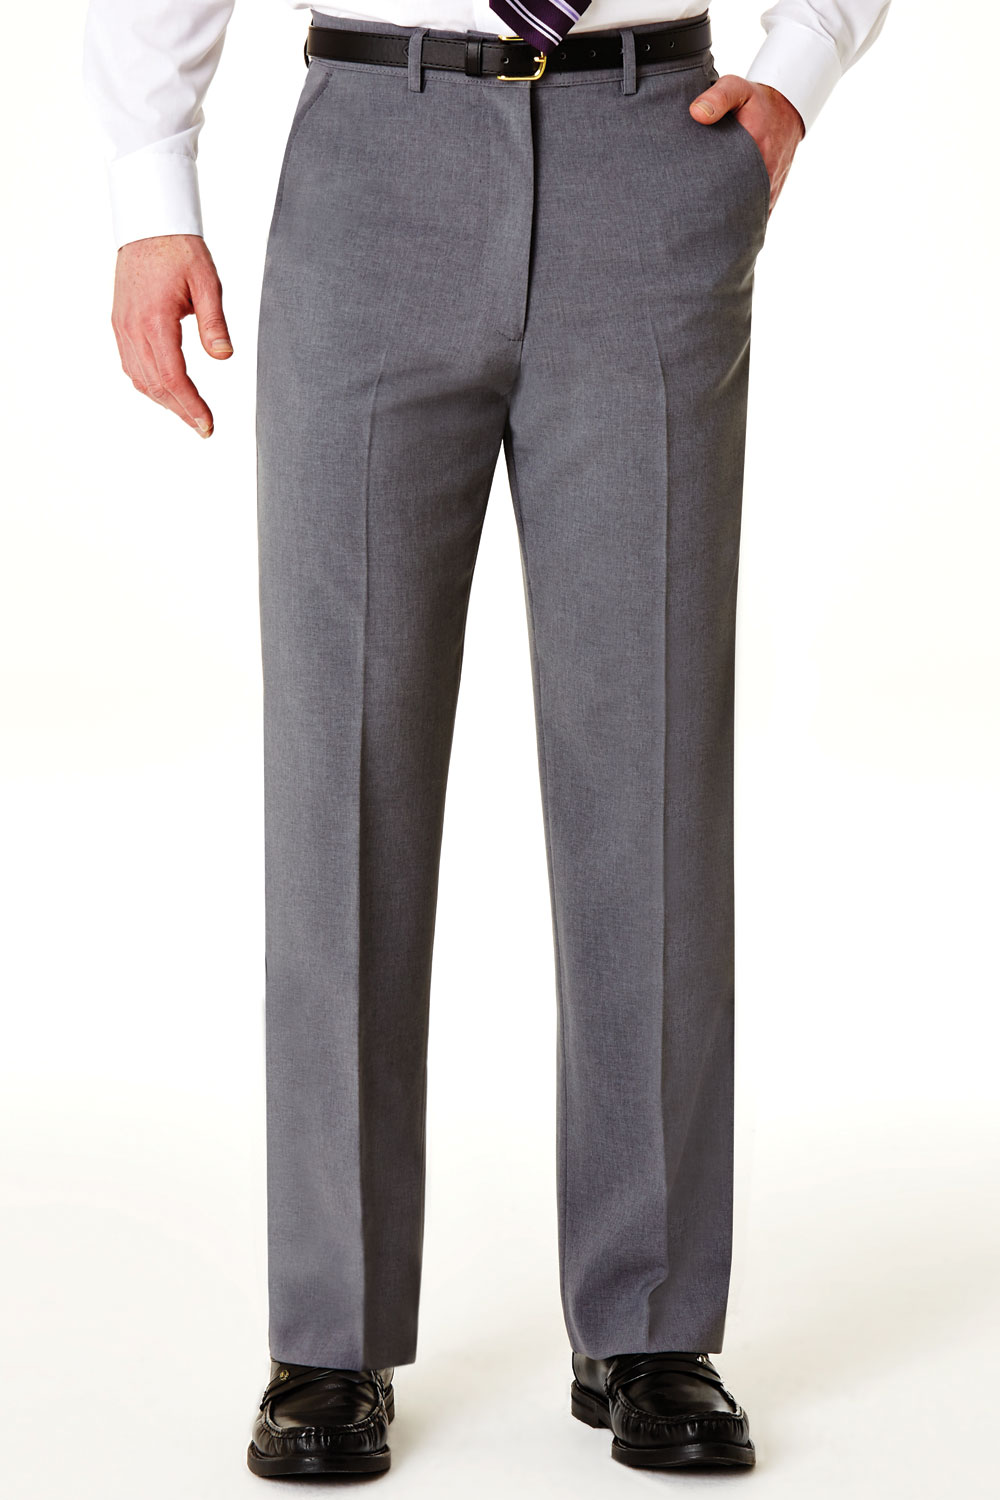 Mens-Farah-Slant-Pocket-Formal-Classic-Trouser-Pants thumbnail 20